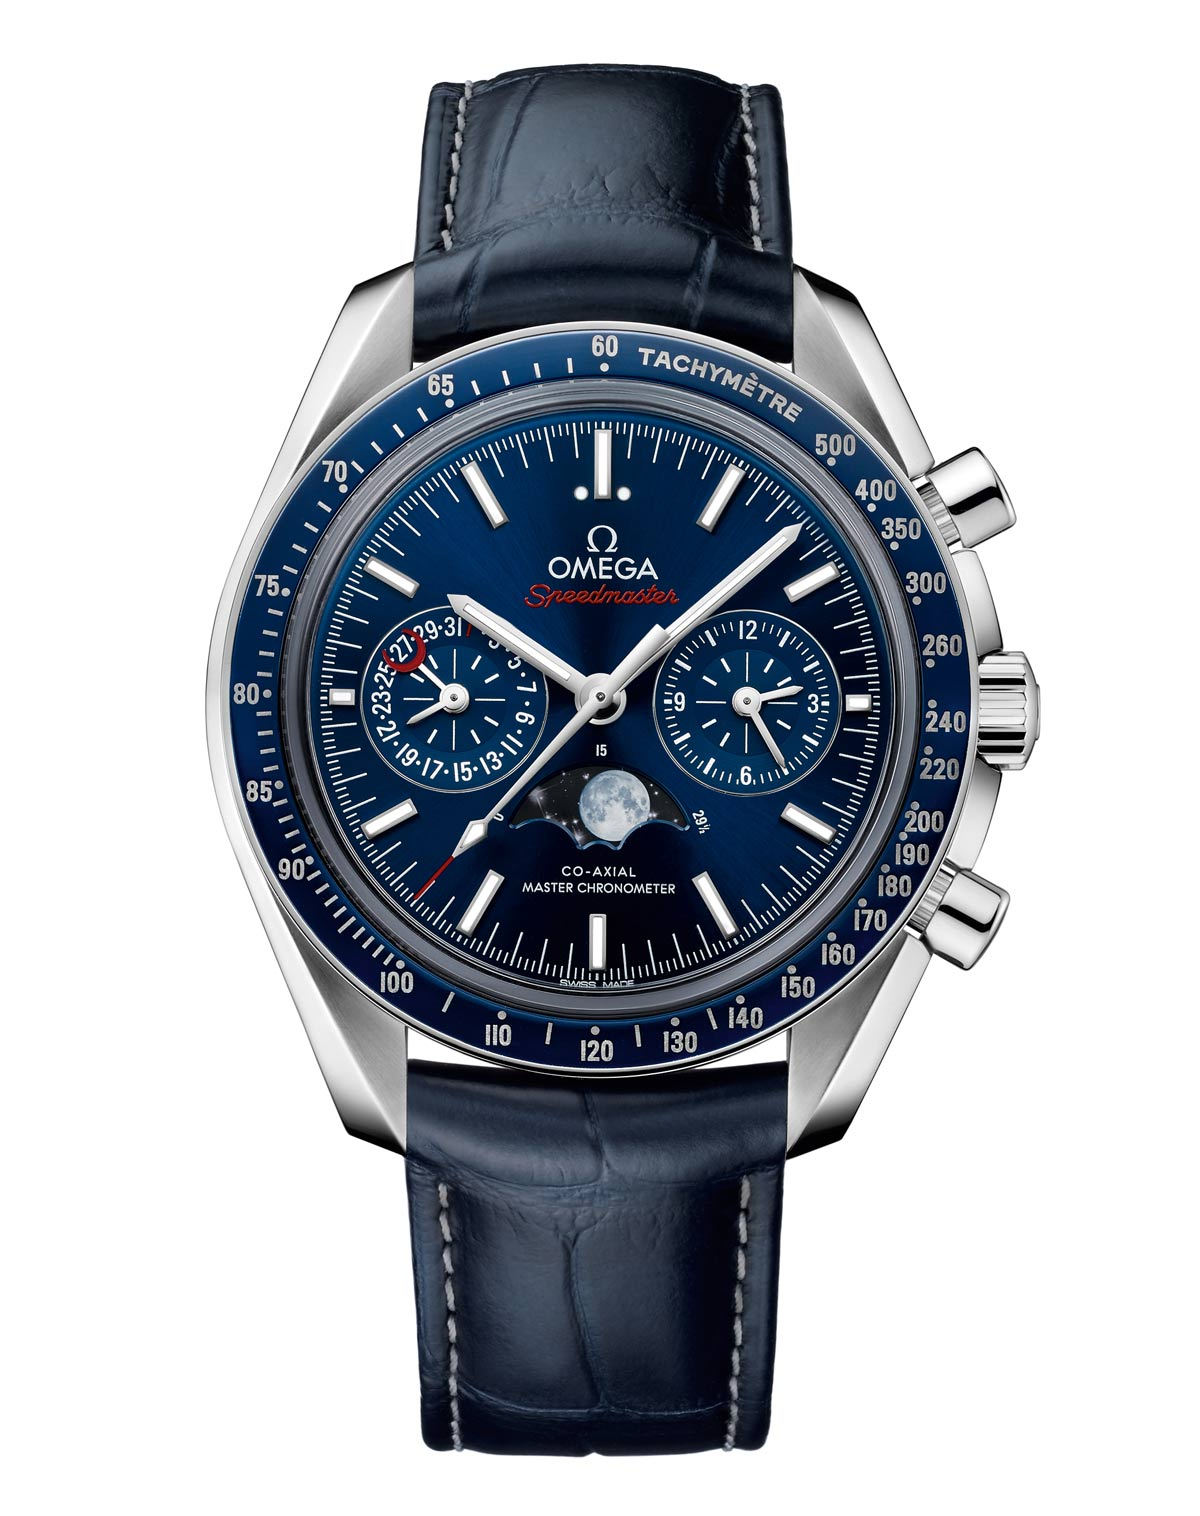 Omega speedmaster moonphase chronograph master chronometer time and watches for Omega watch speedmaster